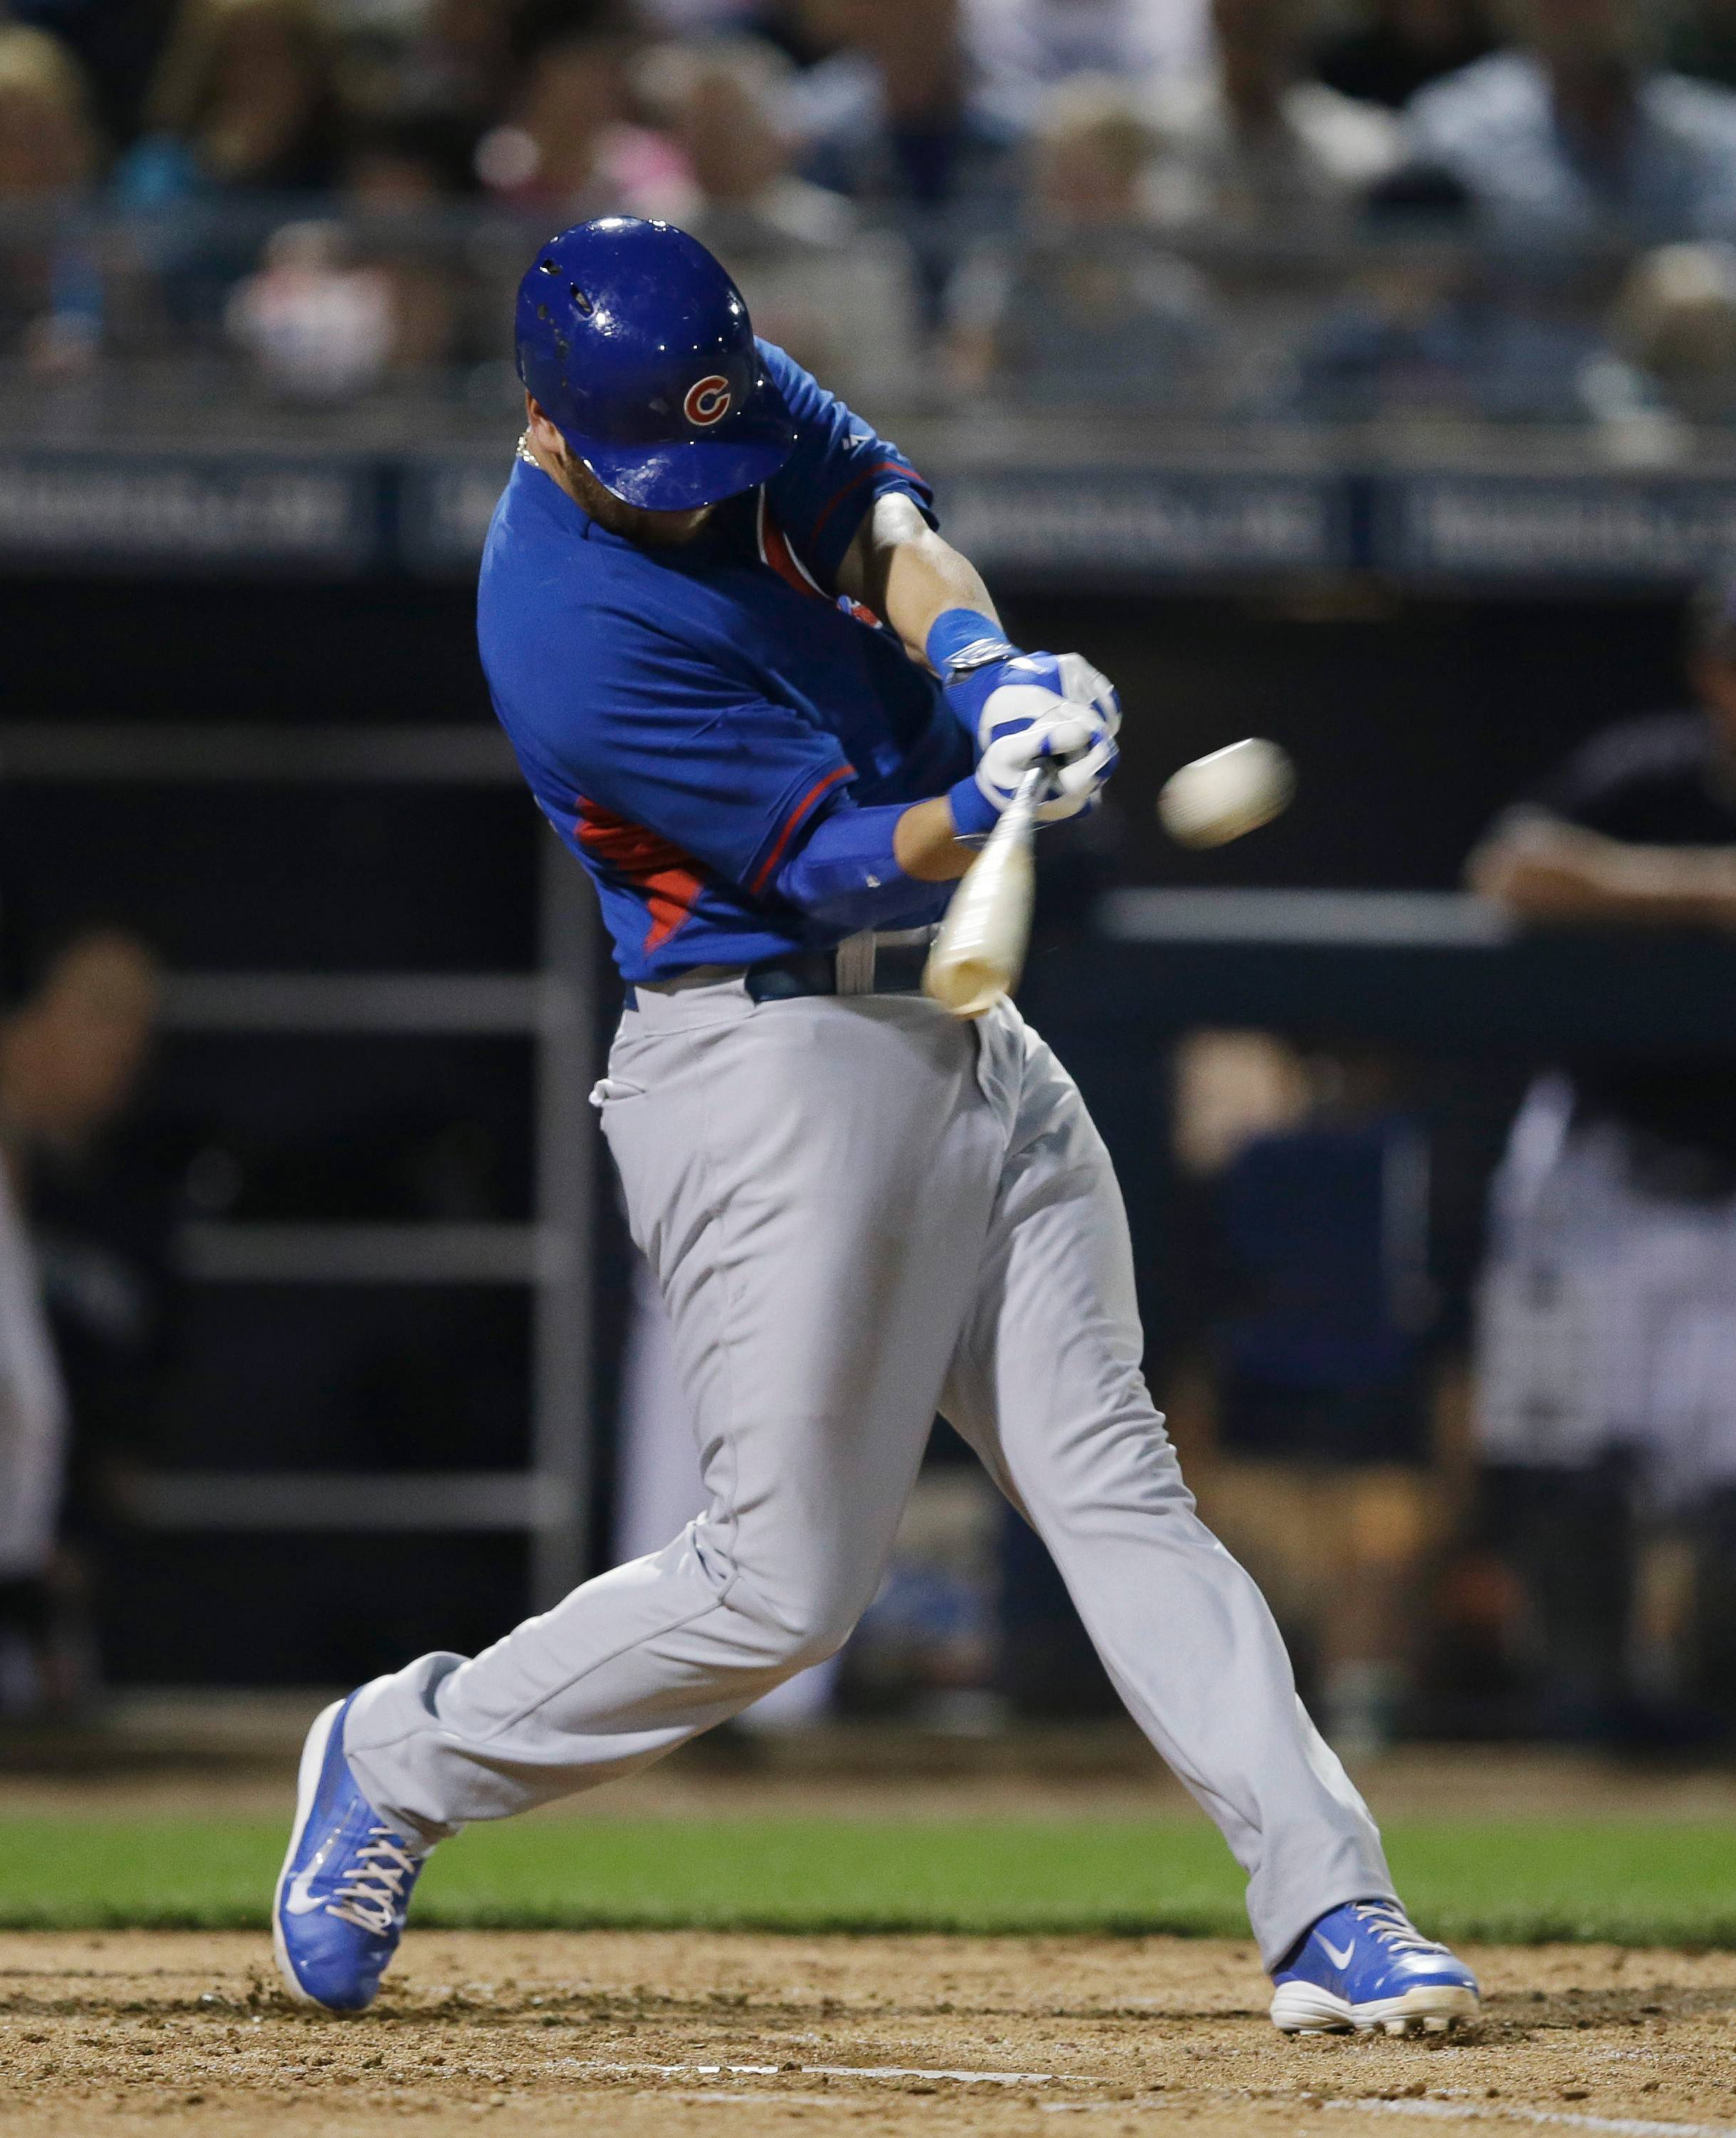 Mike Olt of the Chicago Cubs hits a solo home run during the second inning of a spring exhibition game against Mariners on Wednesday. He added another home later in the game.